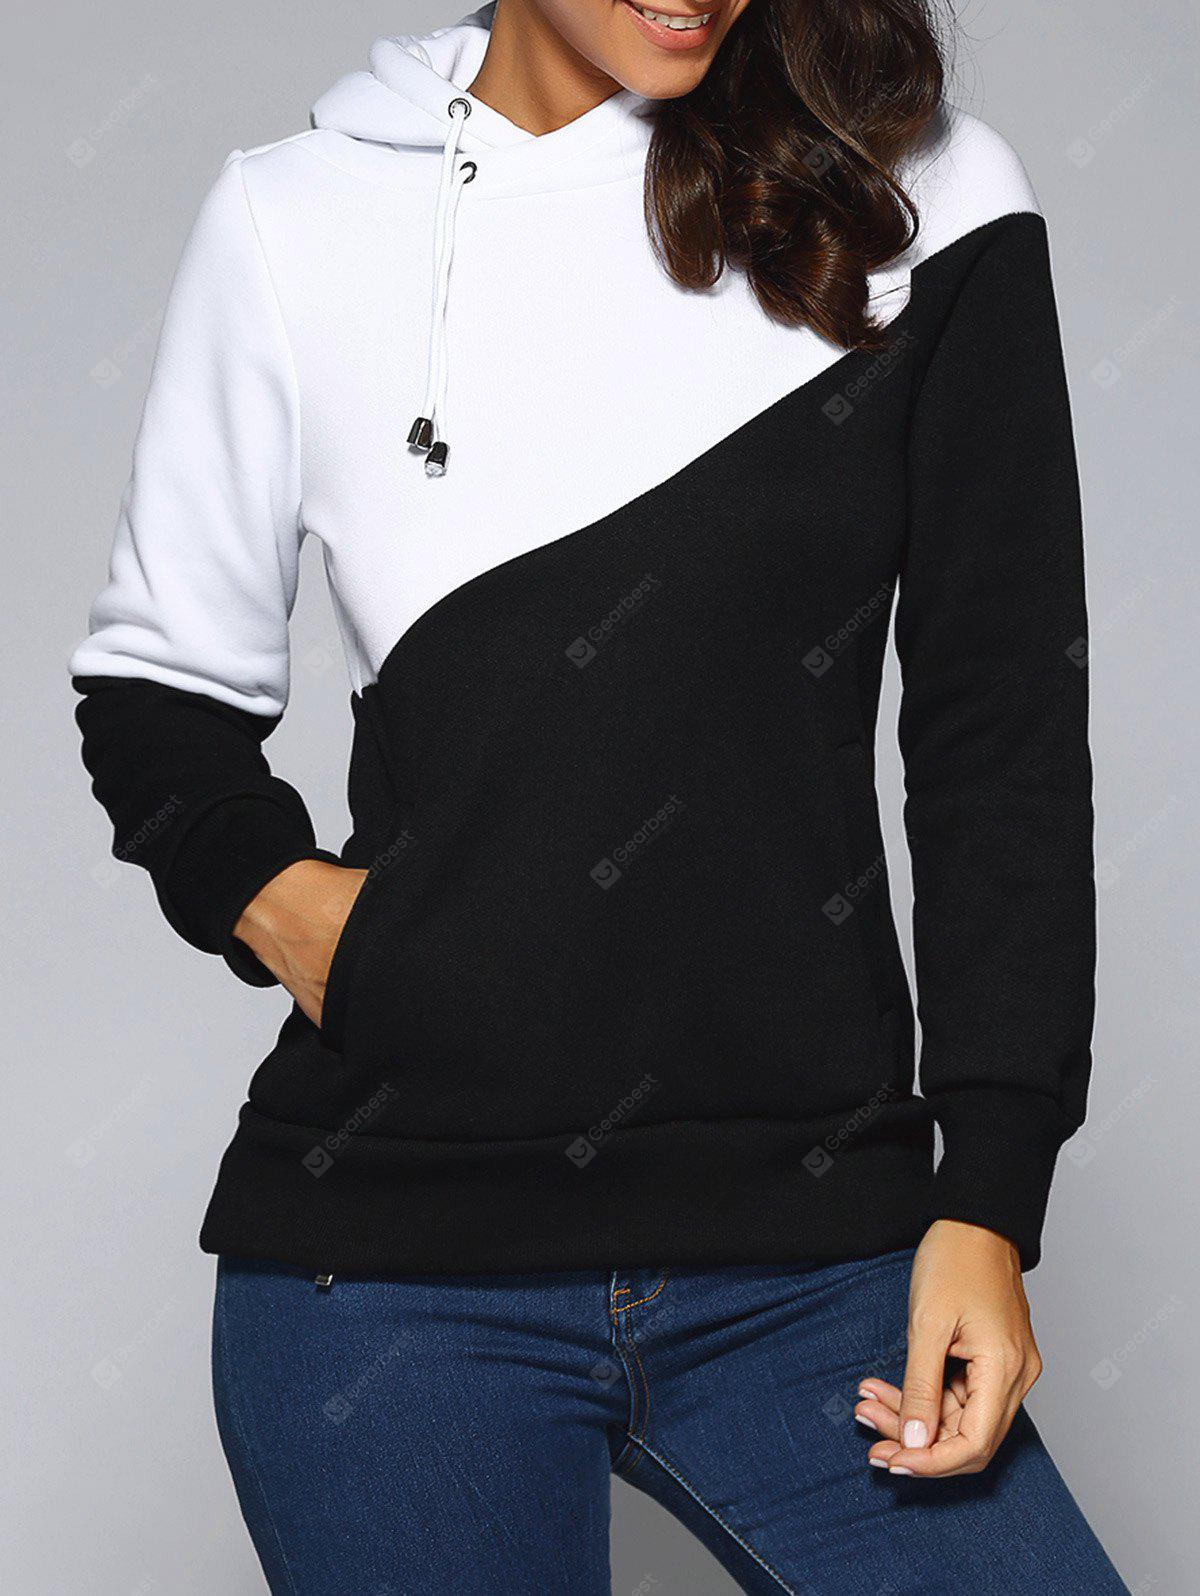 WHITE AND BLACK Contrast Color Spliced Pocket Design Hoodie